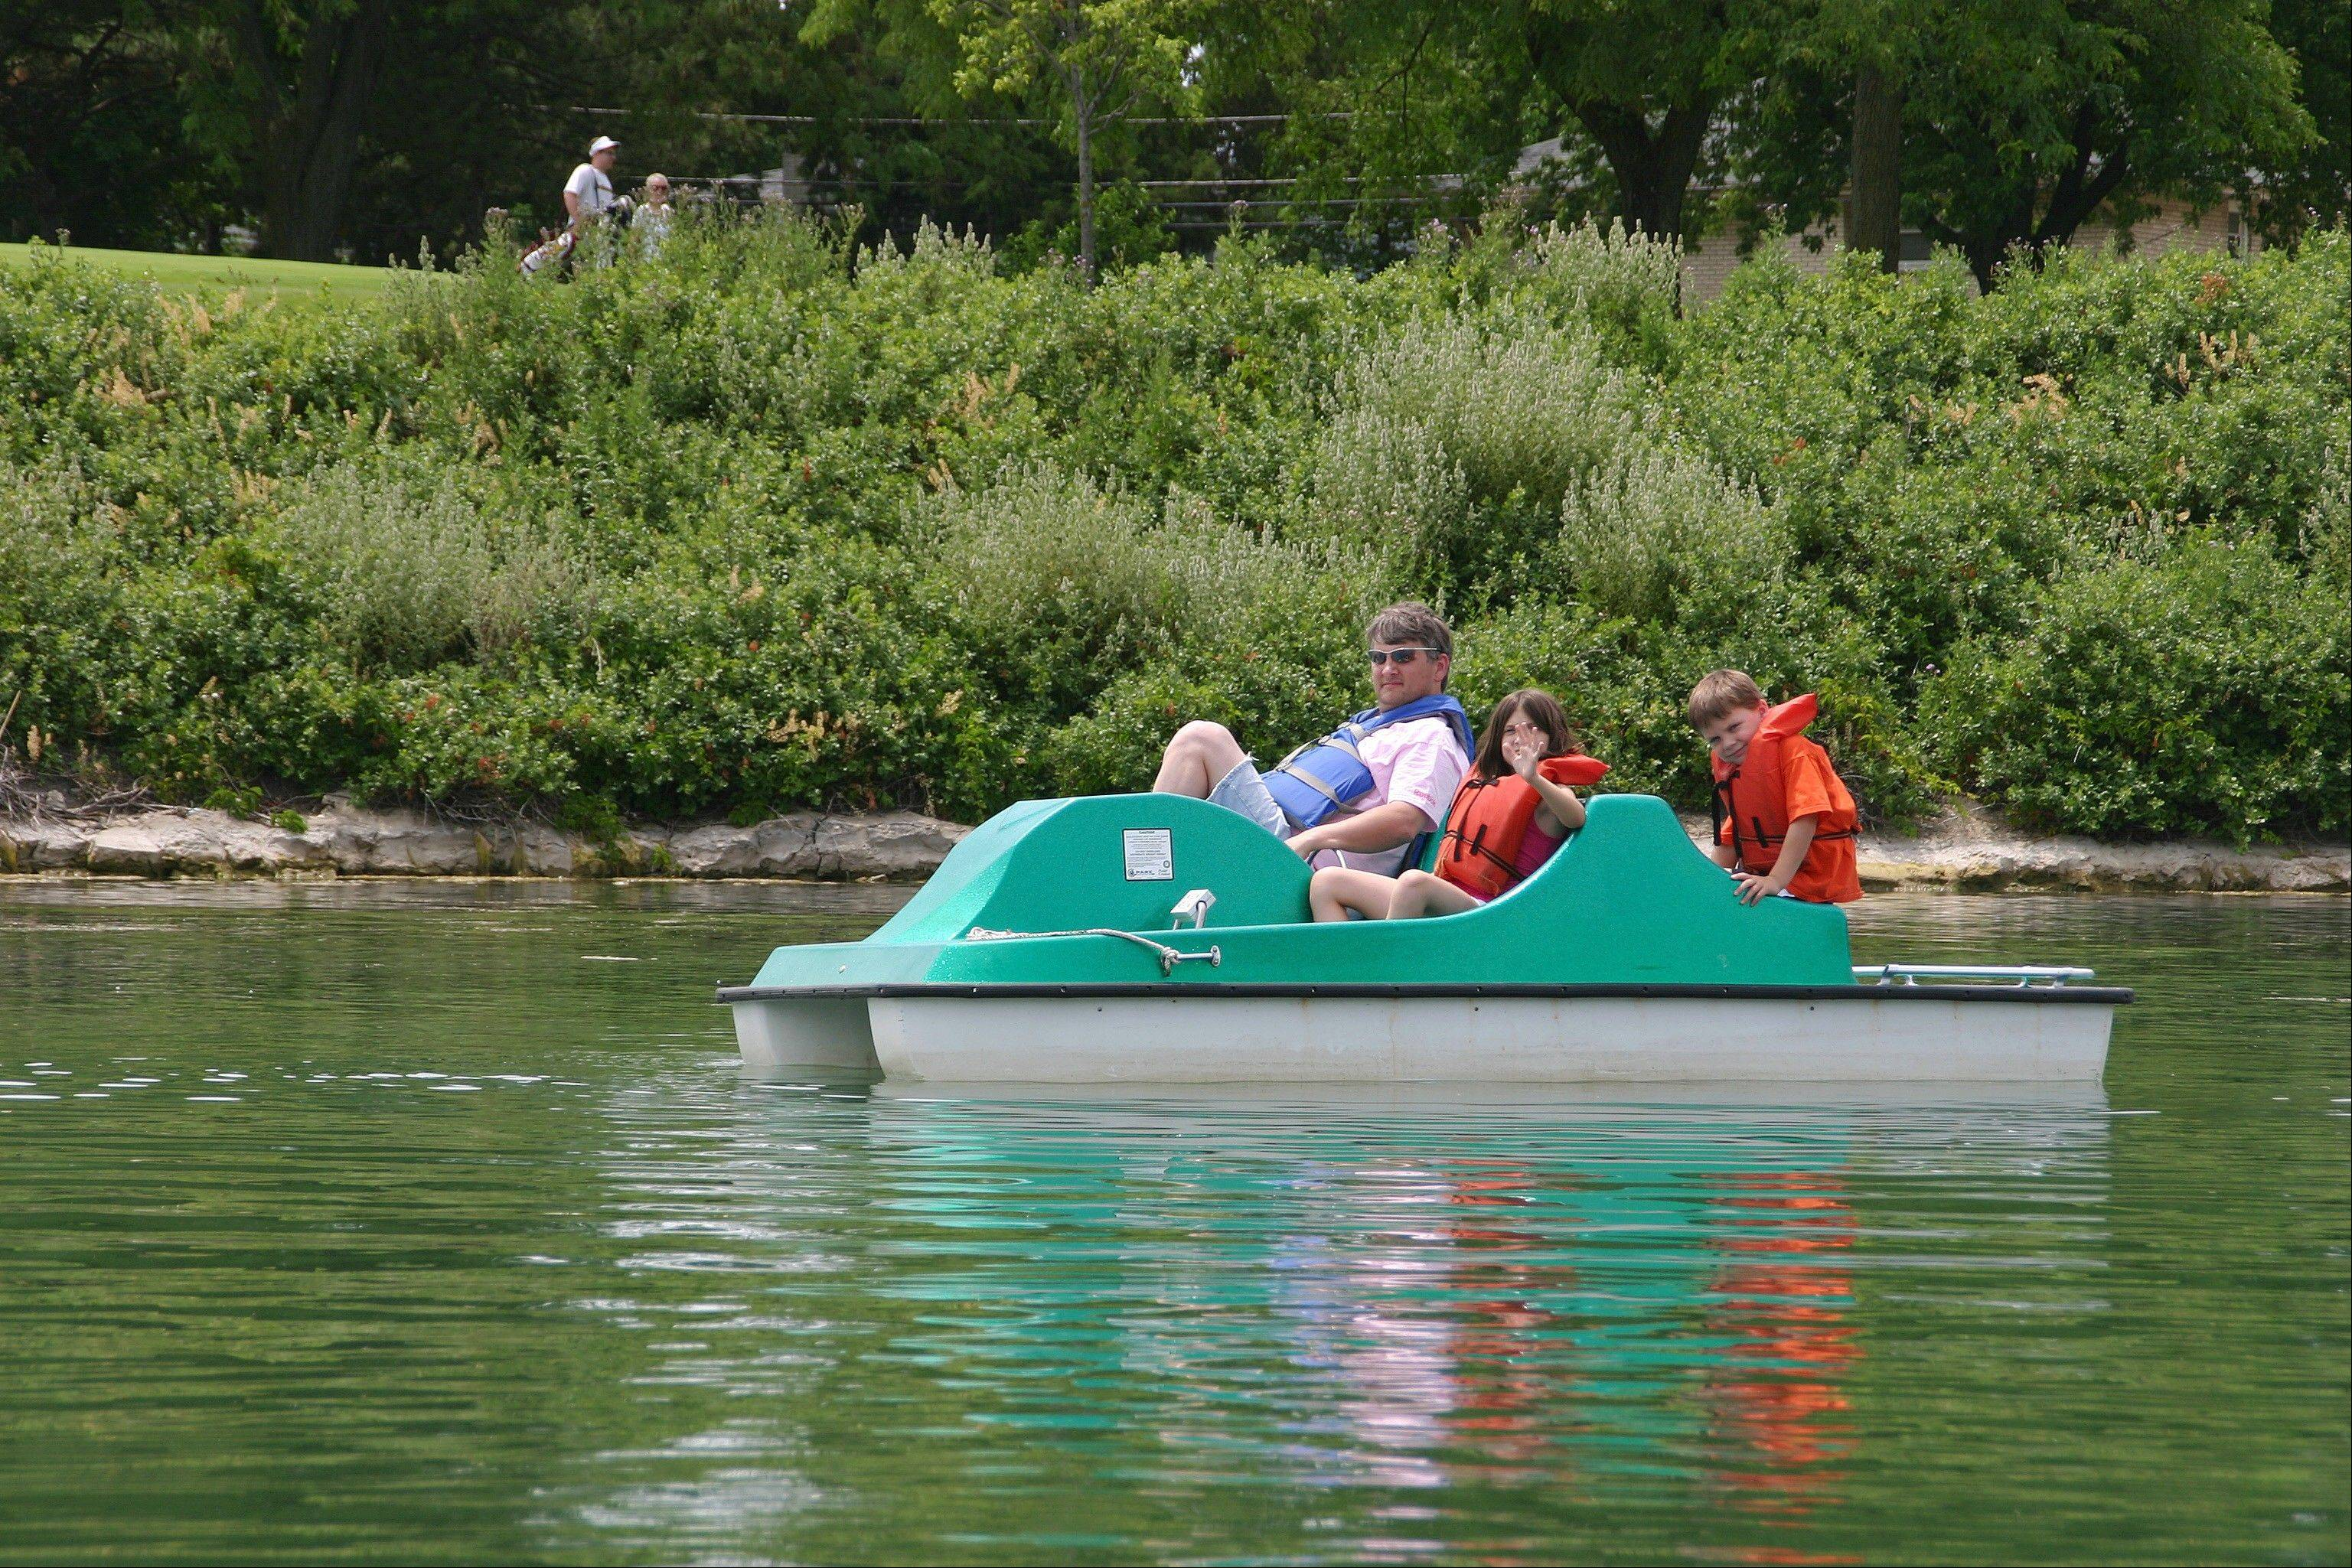 Paddleboat riders wear life jackets as part of the safety protocol at the Lake Park marina.